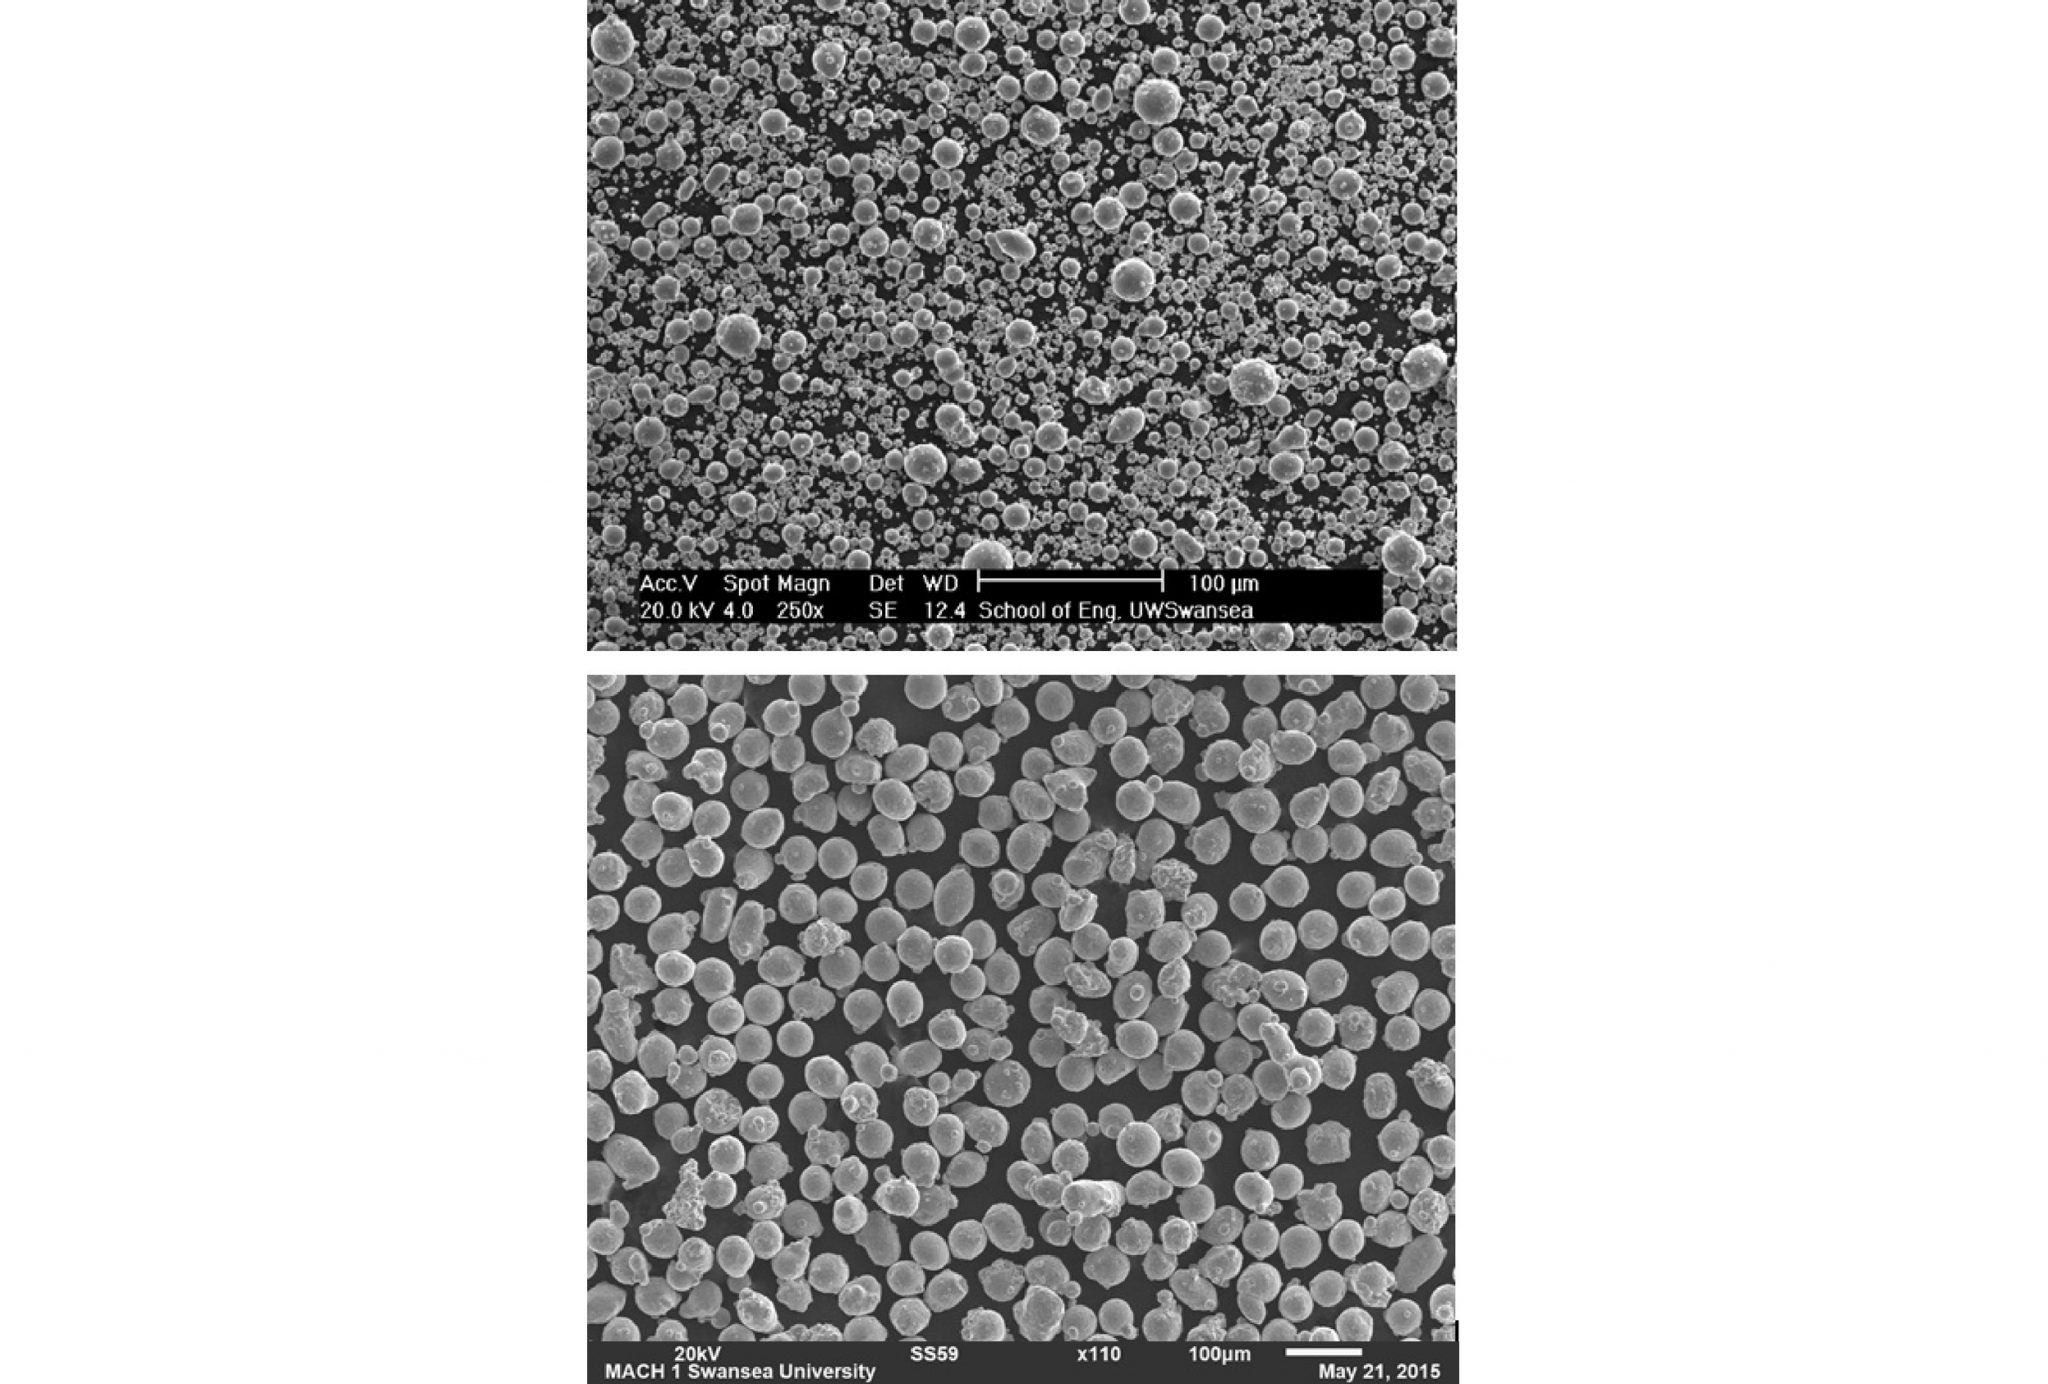 SEM images of Sandvik's Osprey gas-atomized metal powders. Top - Stainless steel powder for MIM. Bottom - refined, more uniform stainless steel for additive manufacturing certification. Images via Sandvik Osprey